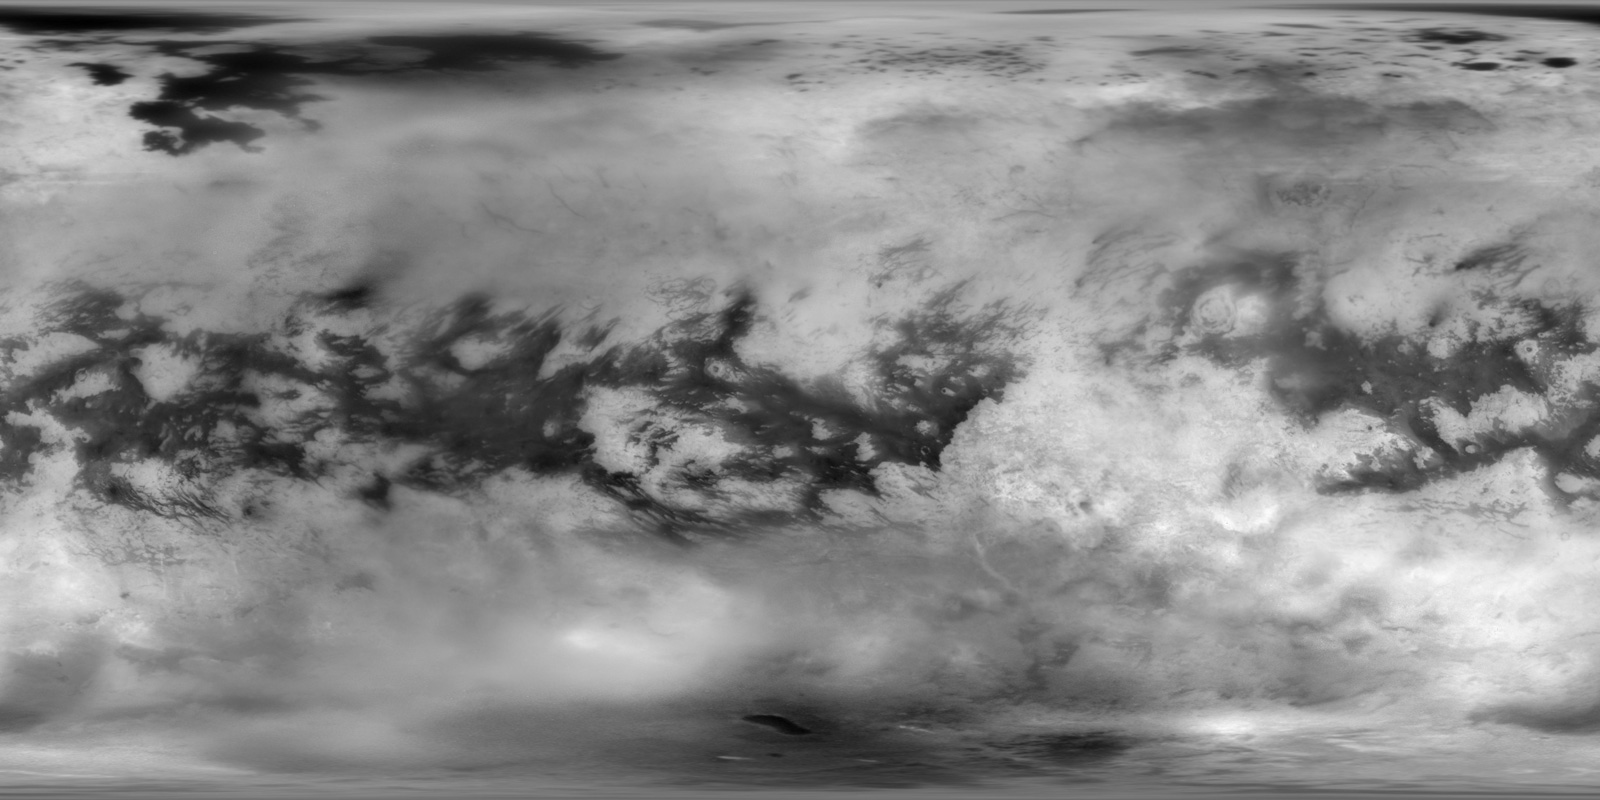 Black and white global view of Titans surface.